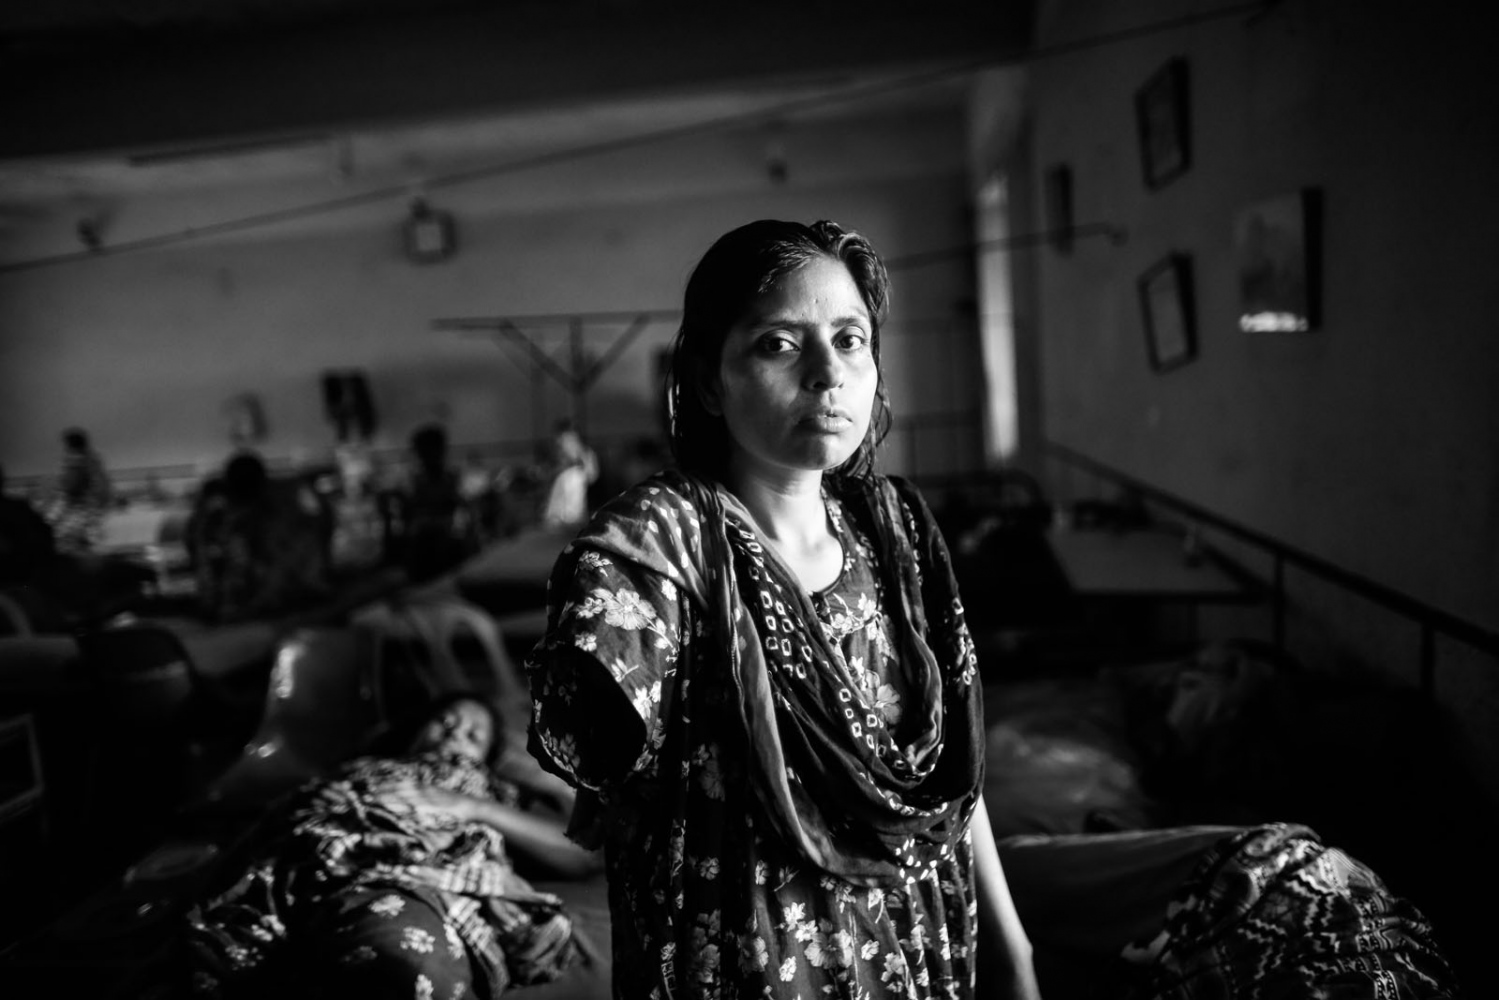 Shilpi, who was rescued from the rubble of the collapsed Rana Plaza building, stands inside the Centre for Rehabilitation of Paralysis (CRP) in Savar.